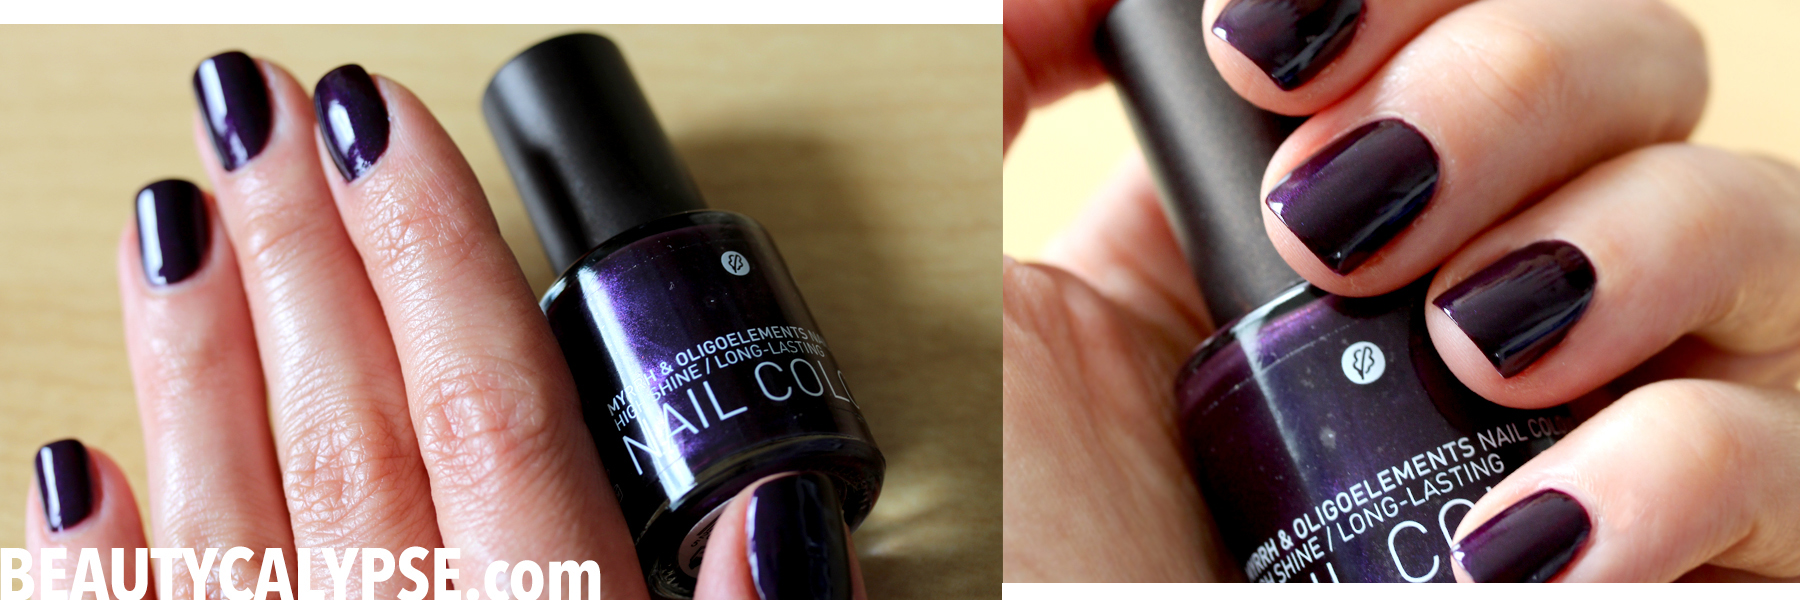 Black Orchid Manicure – Seven Days and Counting! – LIVING ETHICAL ...